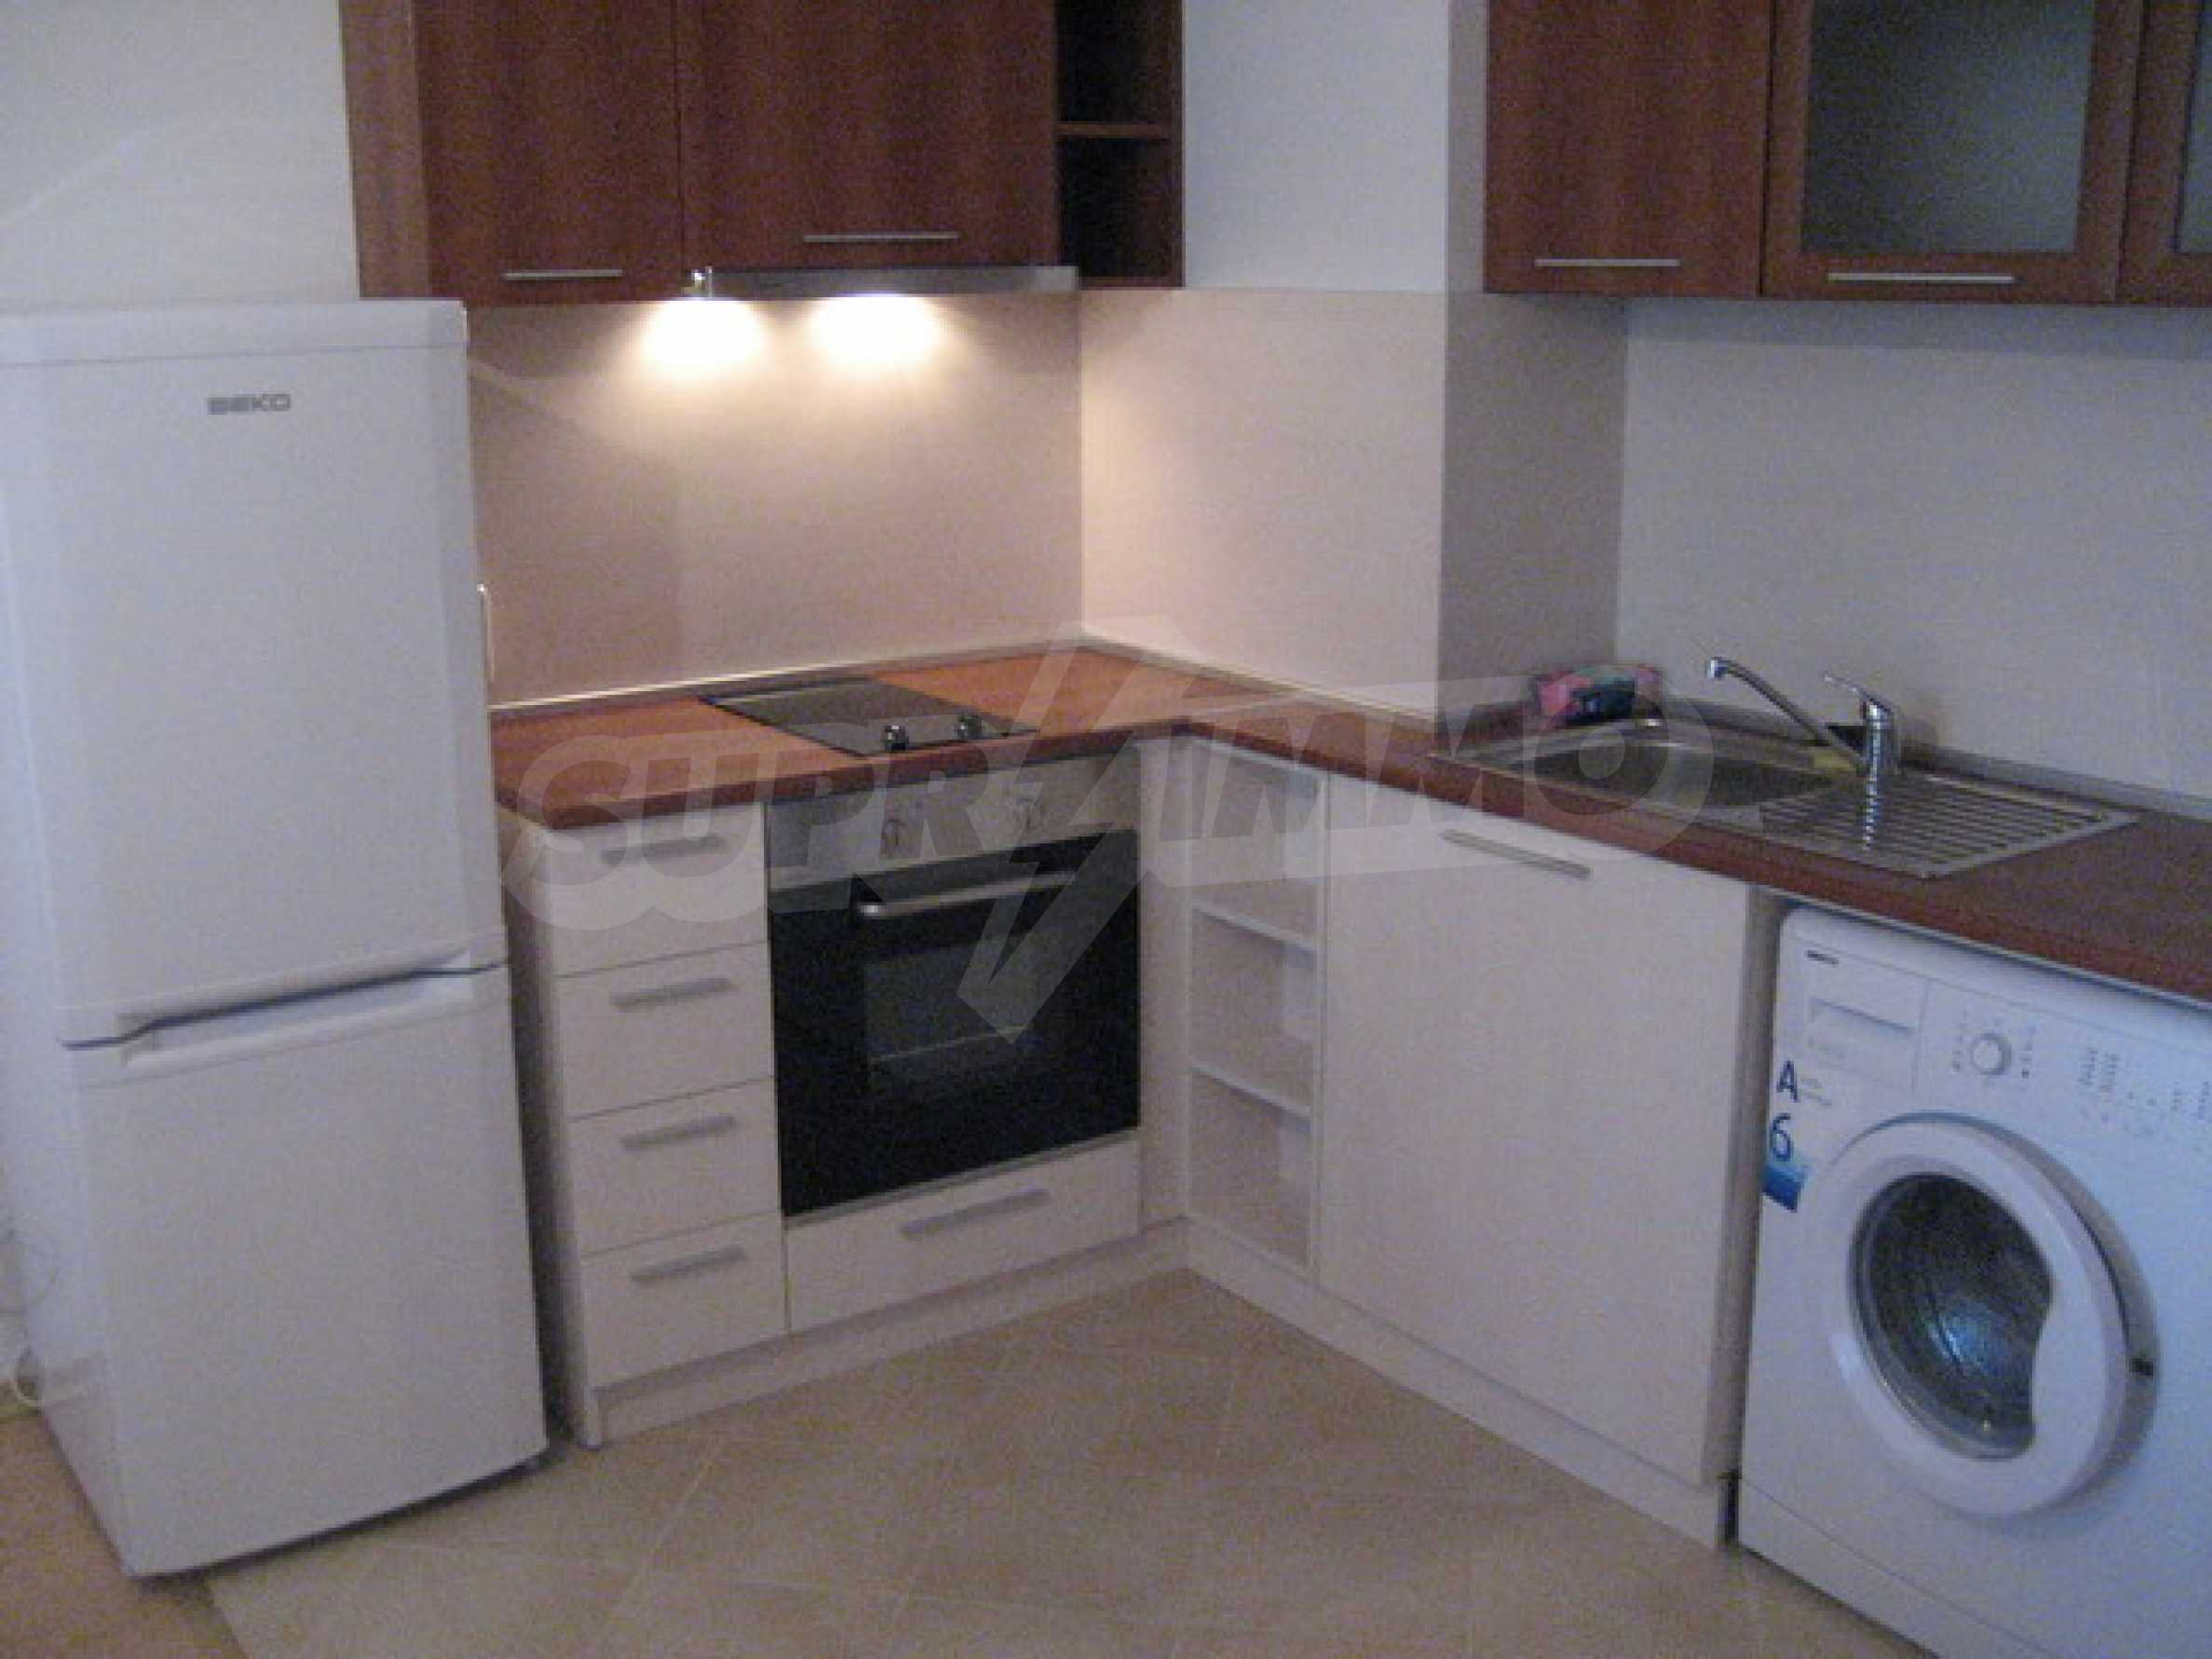 One bedroom apartment with good location for rent in Veliko Tarnovo 6